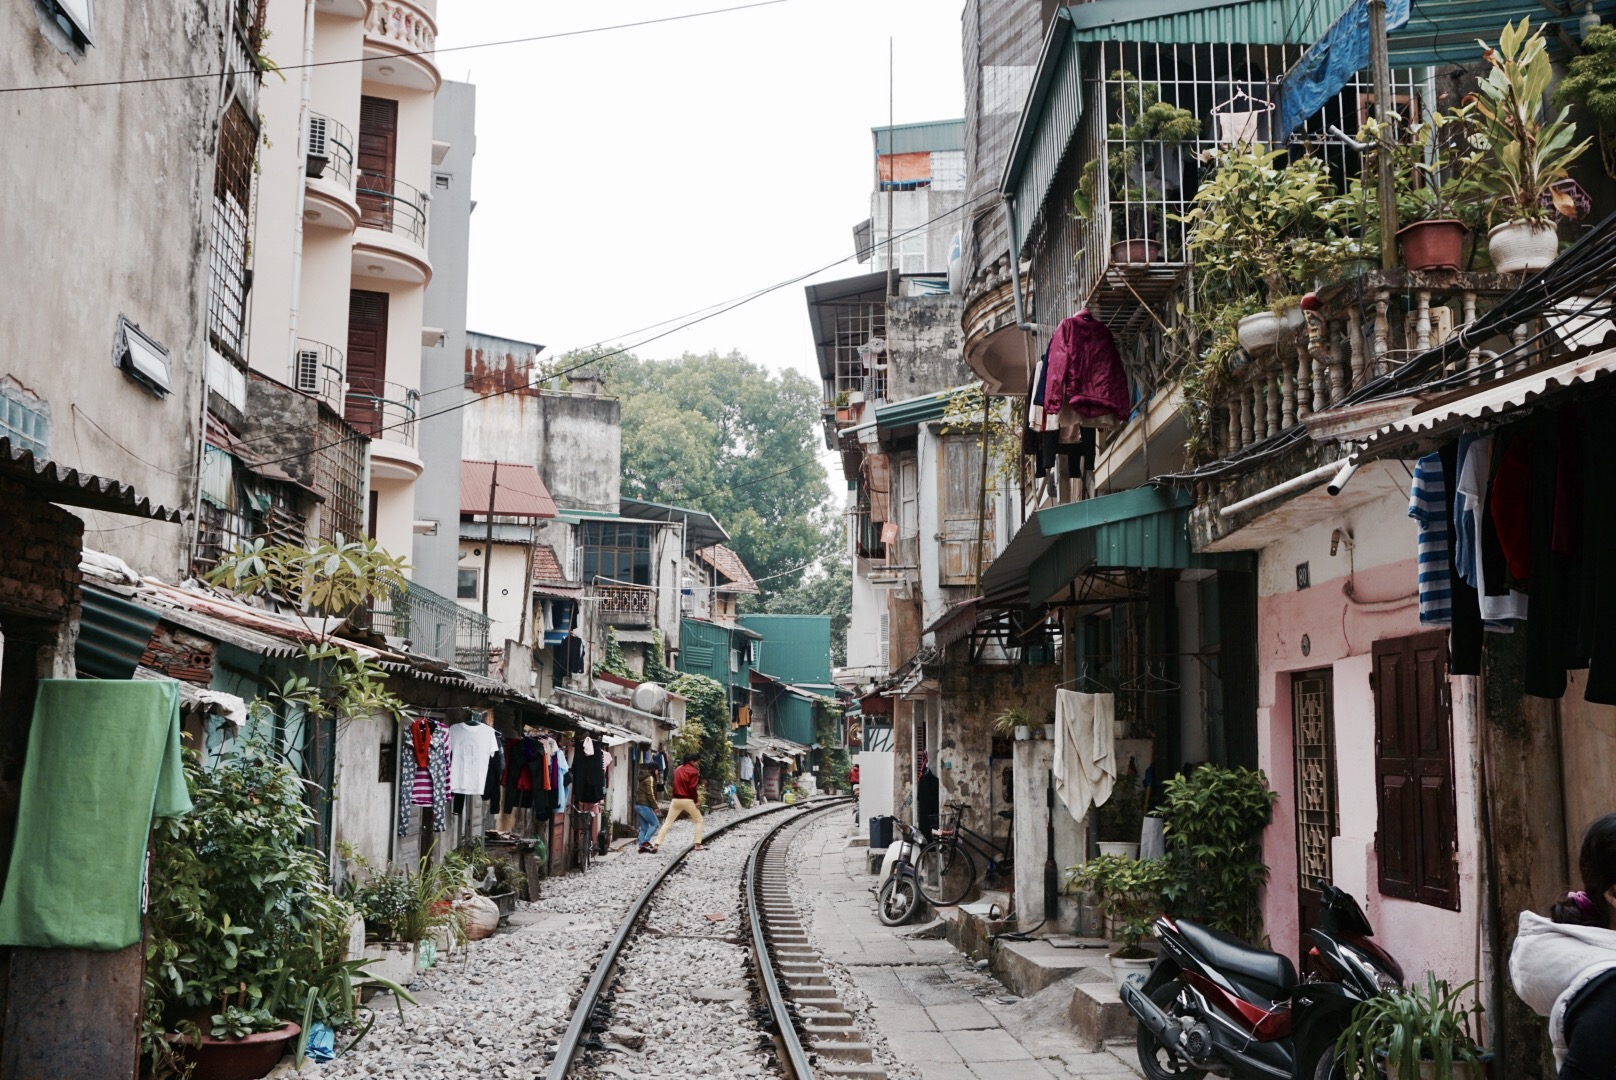 24 hours in Hanoi, Vietnam - A Visit to Train Street